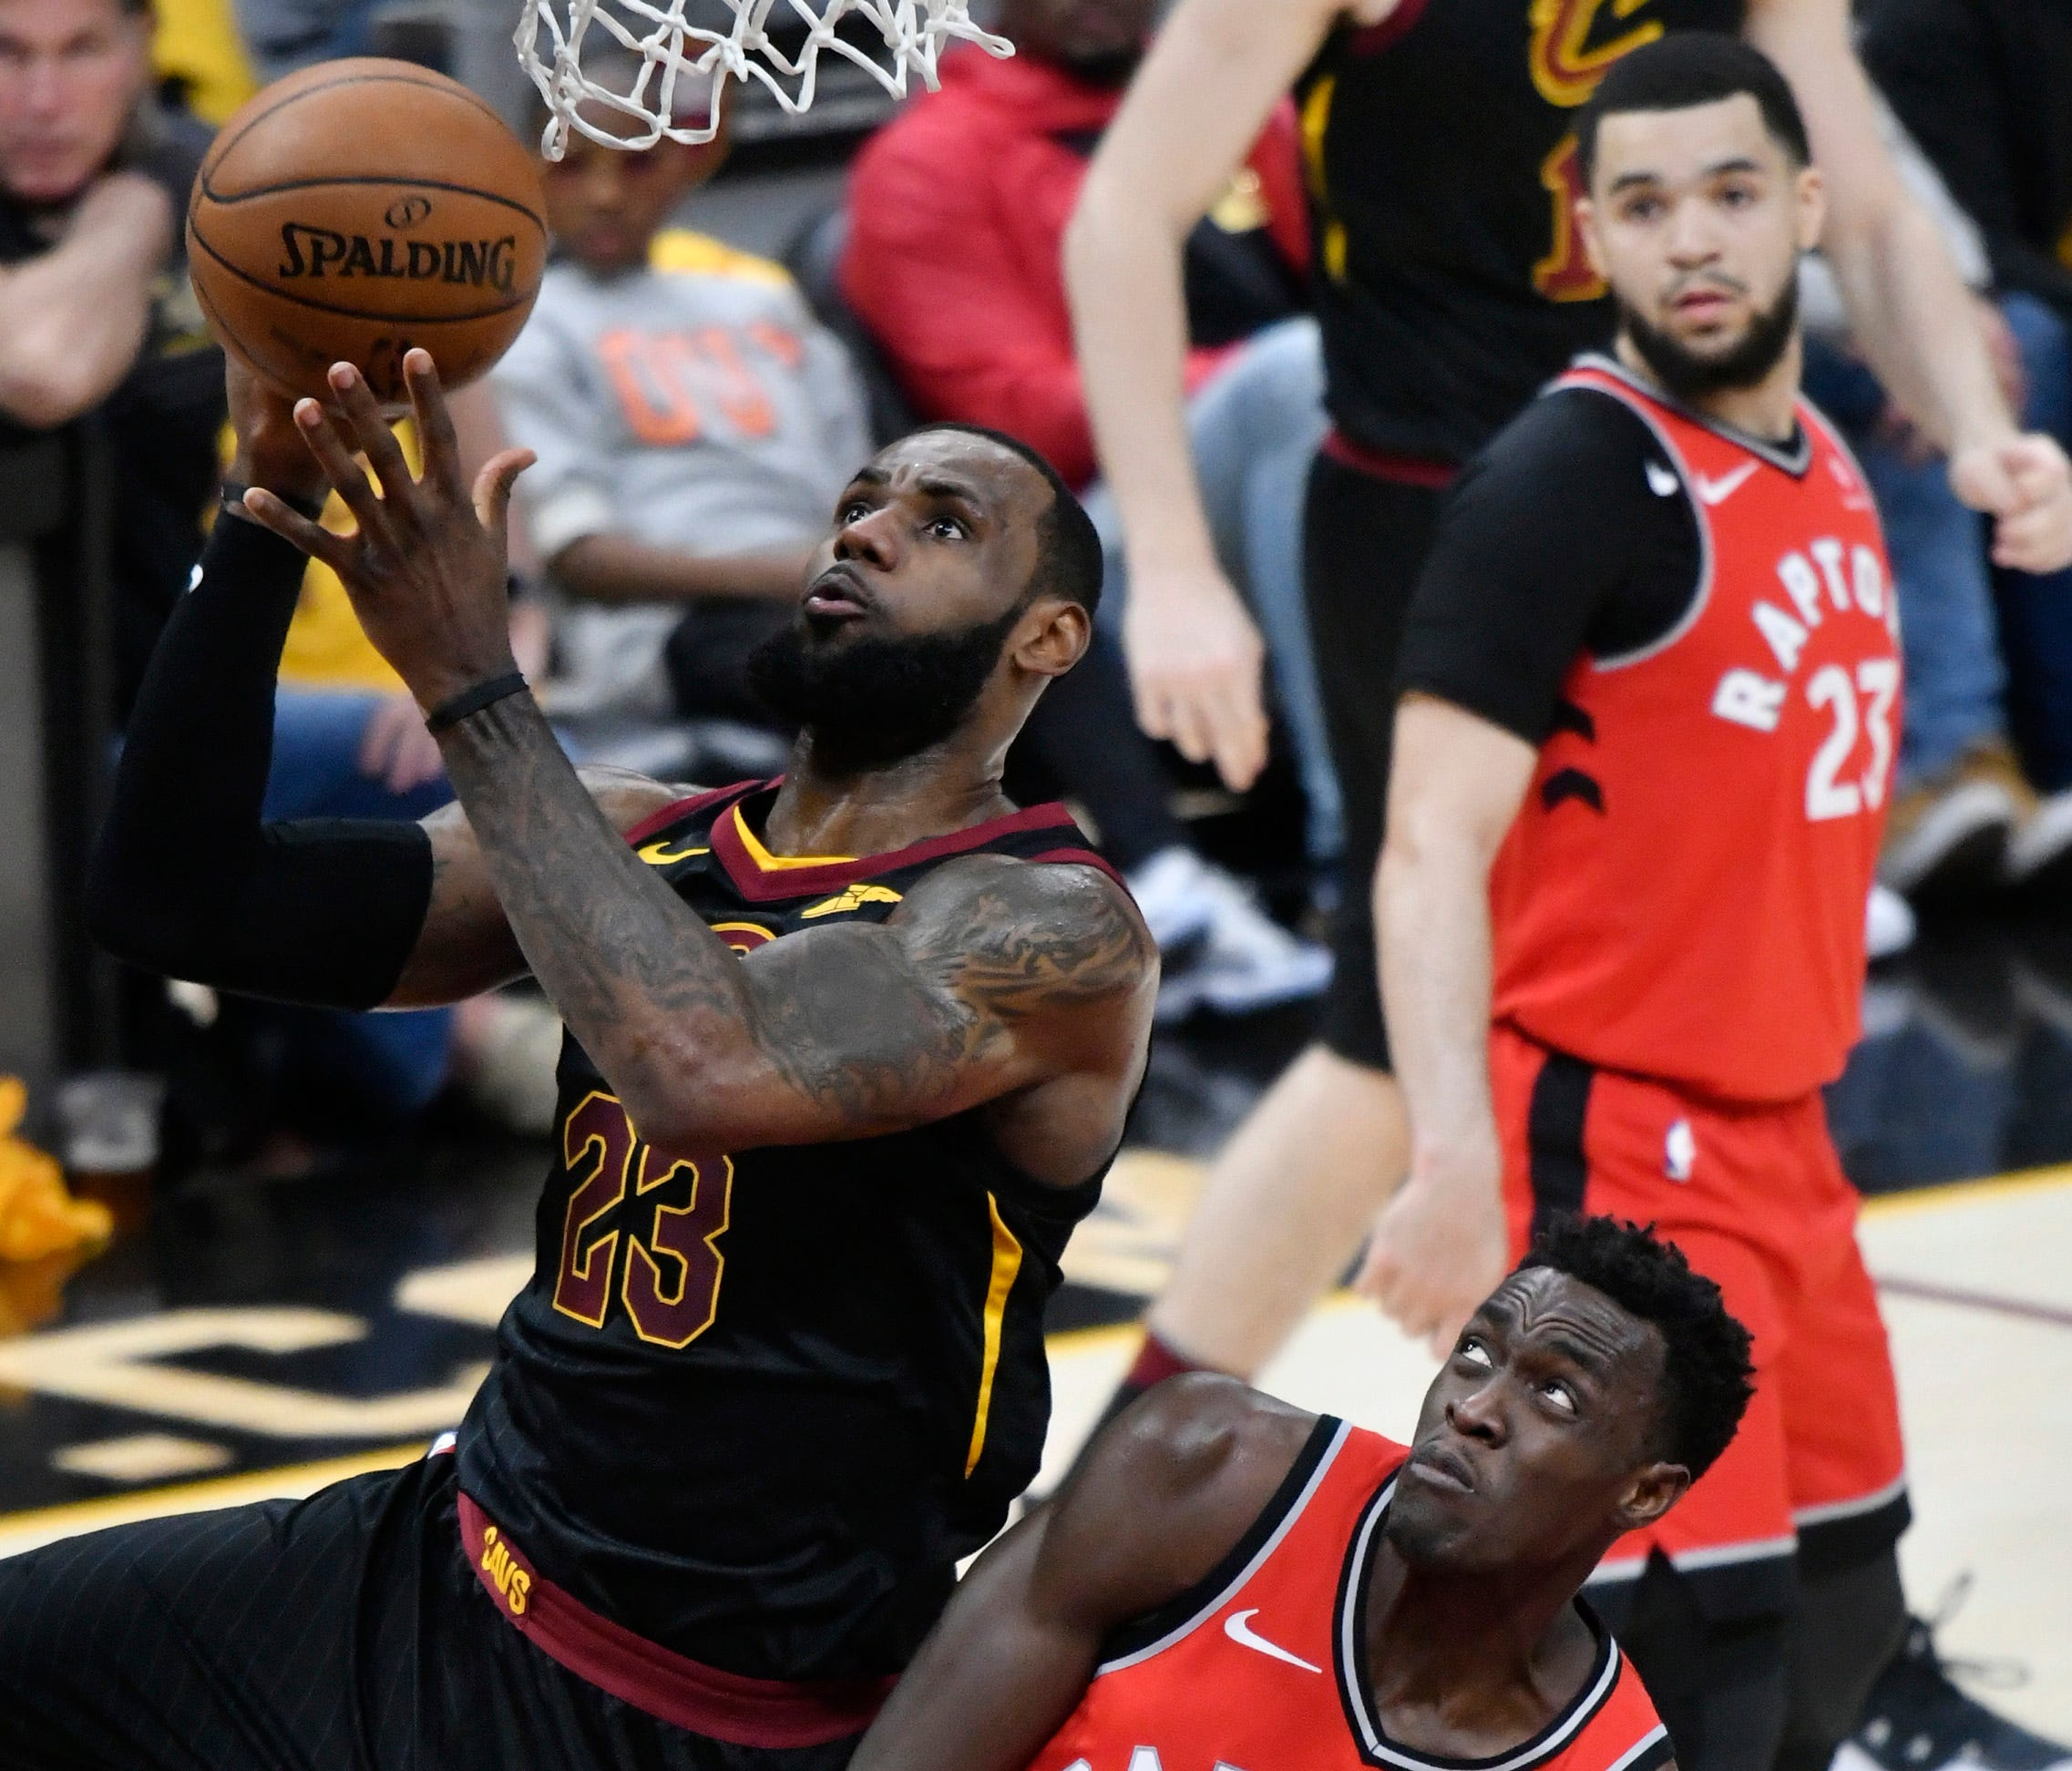 Cleveland Cavaliers forward LeBron James (23) drives against Toronto Raptors forward Pascal Siakam (43) in the second quarter in game four of the second round of the 2018 NBA Playoffs at Quicken Loans Arena.